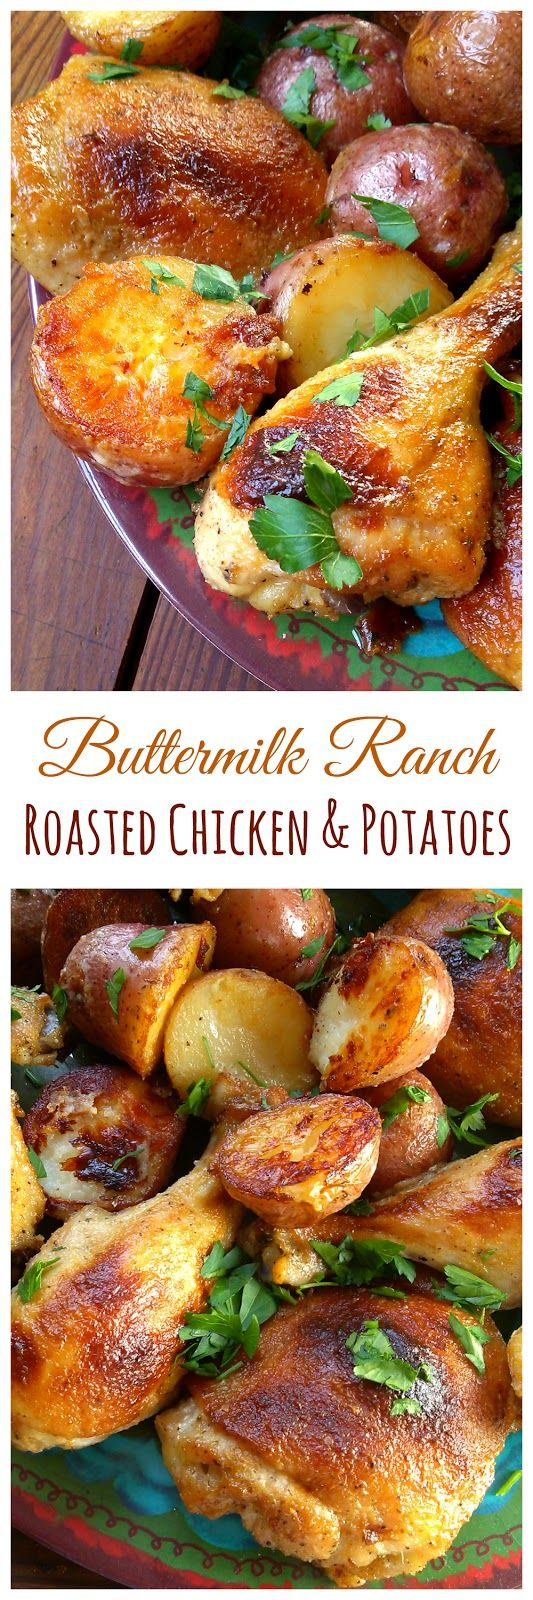 South Your Mouth: Buttermilk Ranch Roasted Chicken with Potatoes